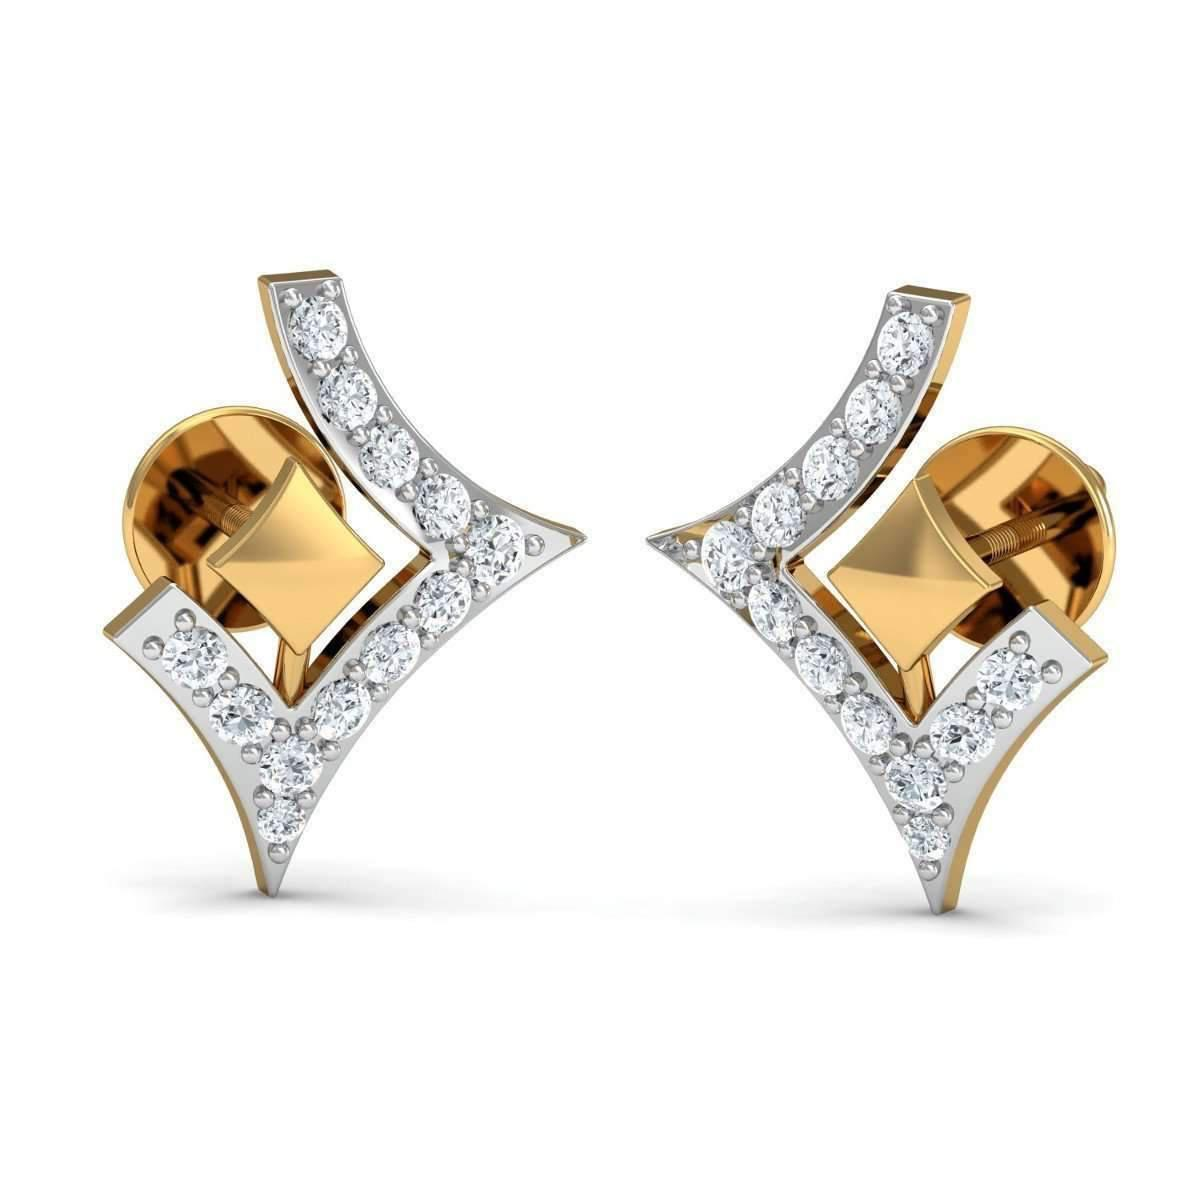 Diamoire Jewels Brilliant Cut Pave Diamond Earrings in 10kt Yellow Gold UNdLu